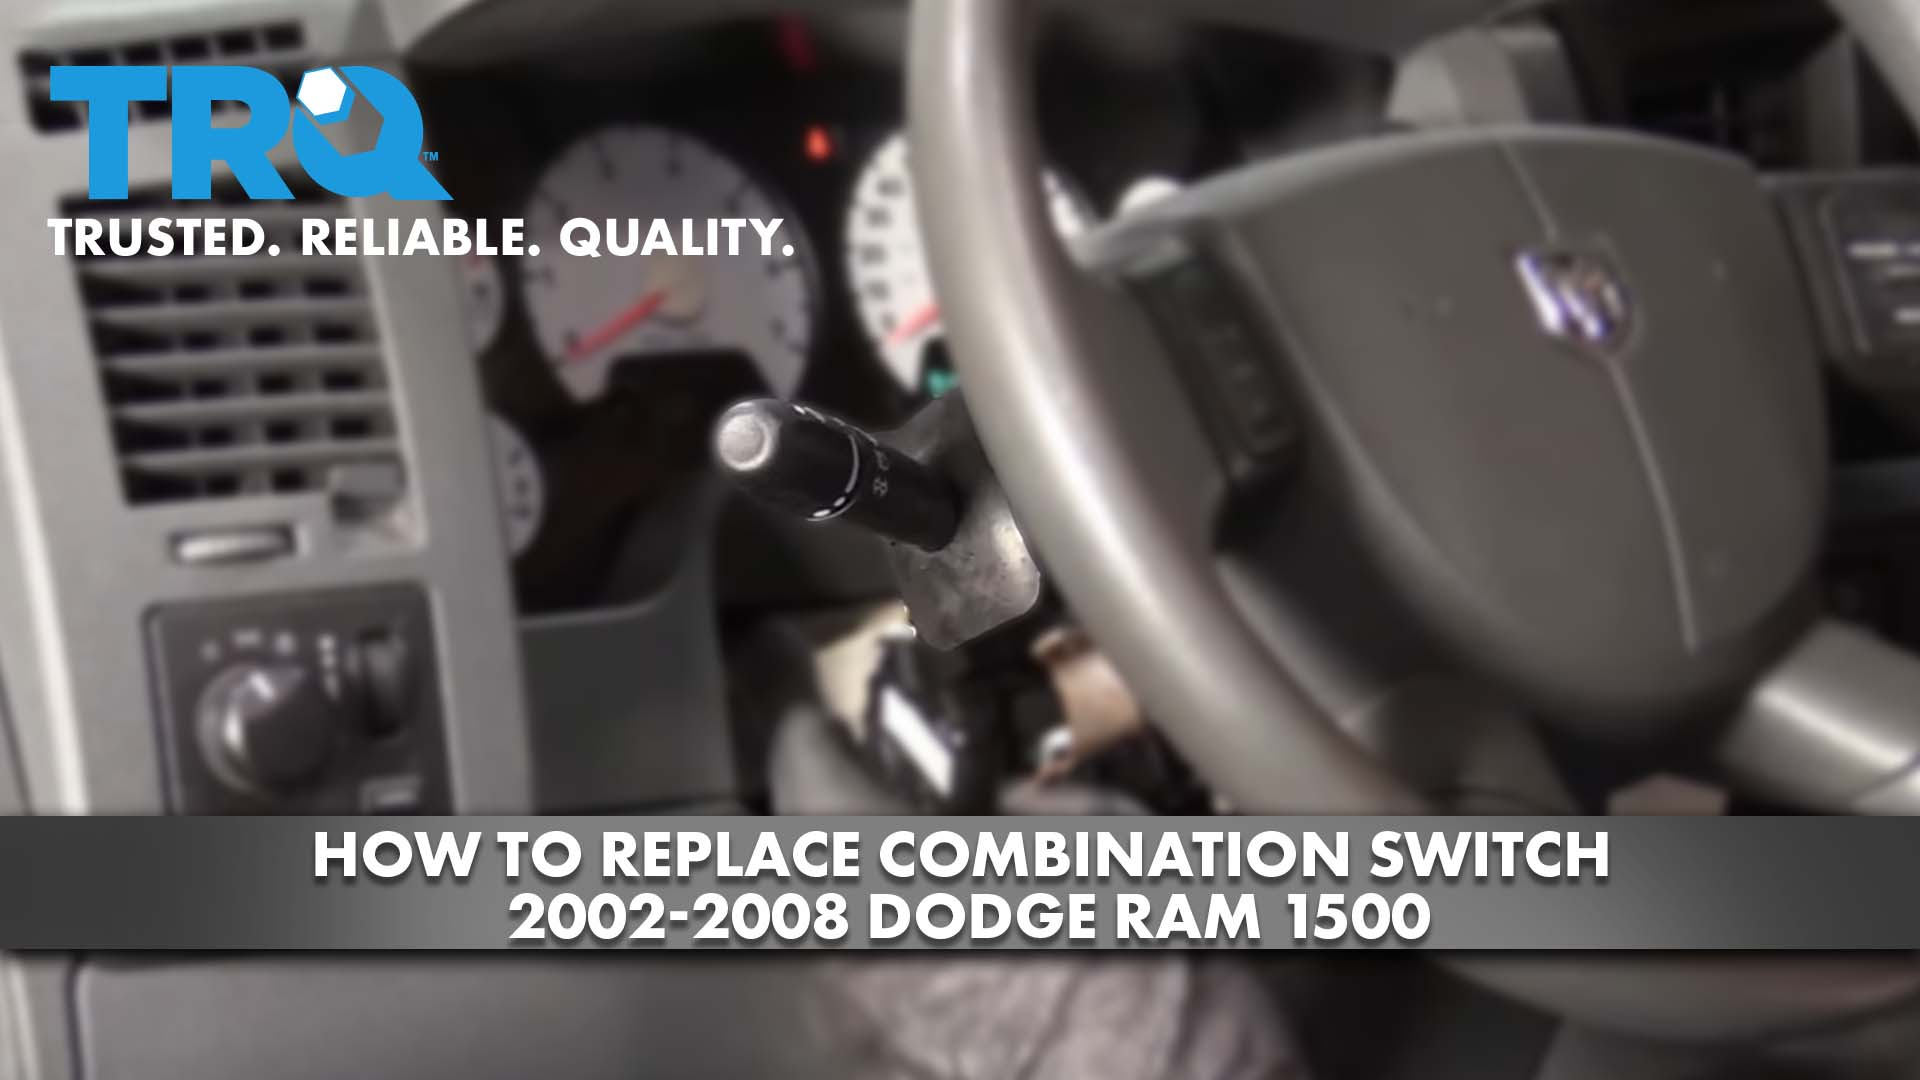 How to Replace Combination Switch 2002-08 Dodge RAM 1500